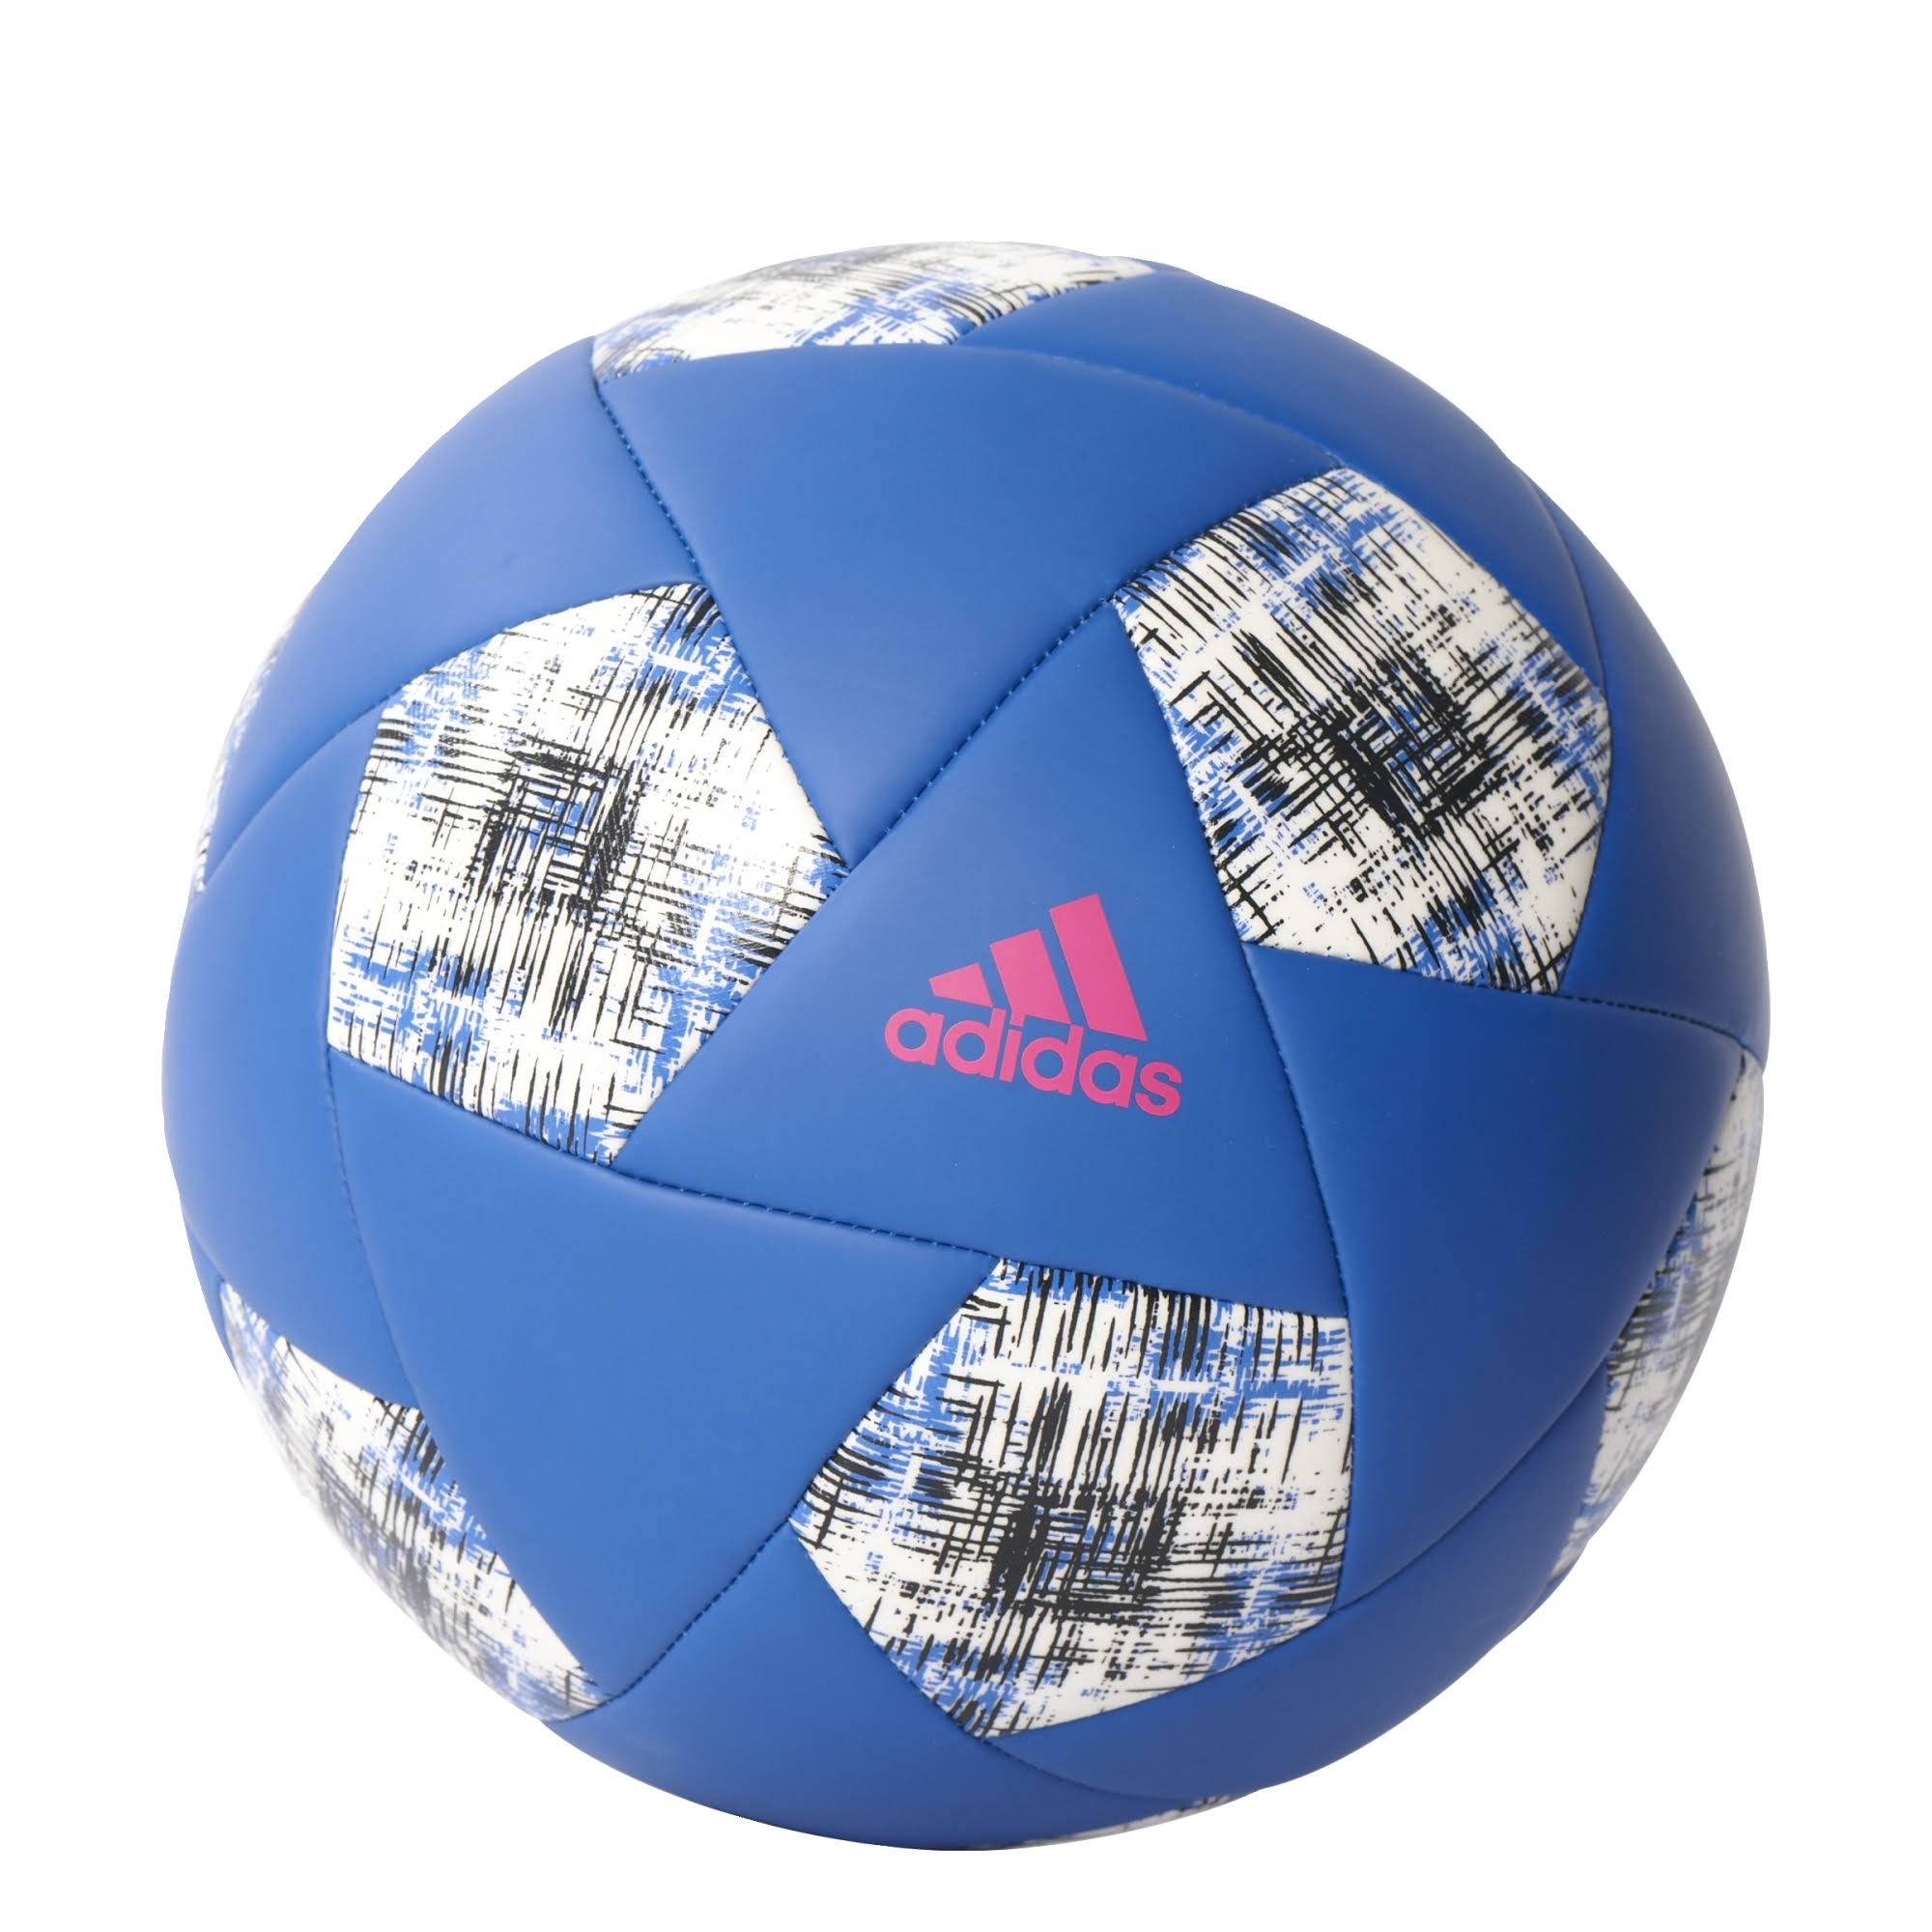 Adidas Performance X Glider Match Soccer Ball - Black, Blue and White, Size 5